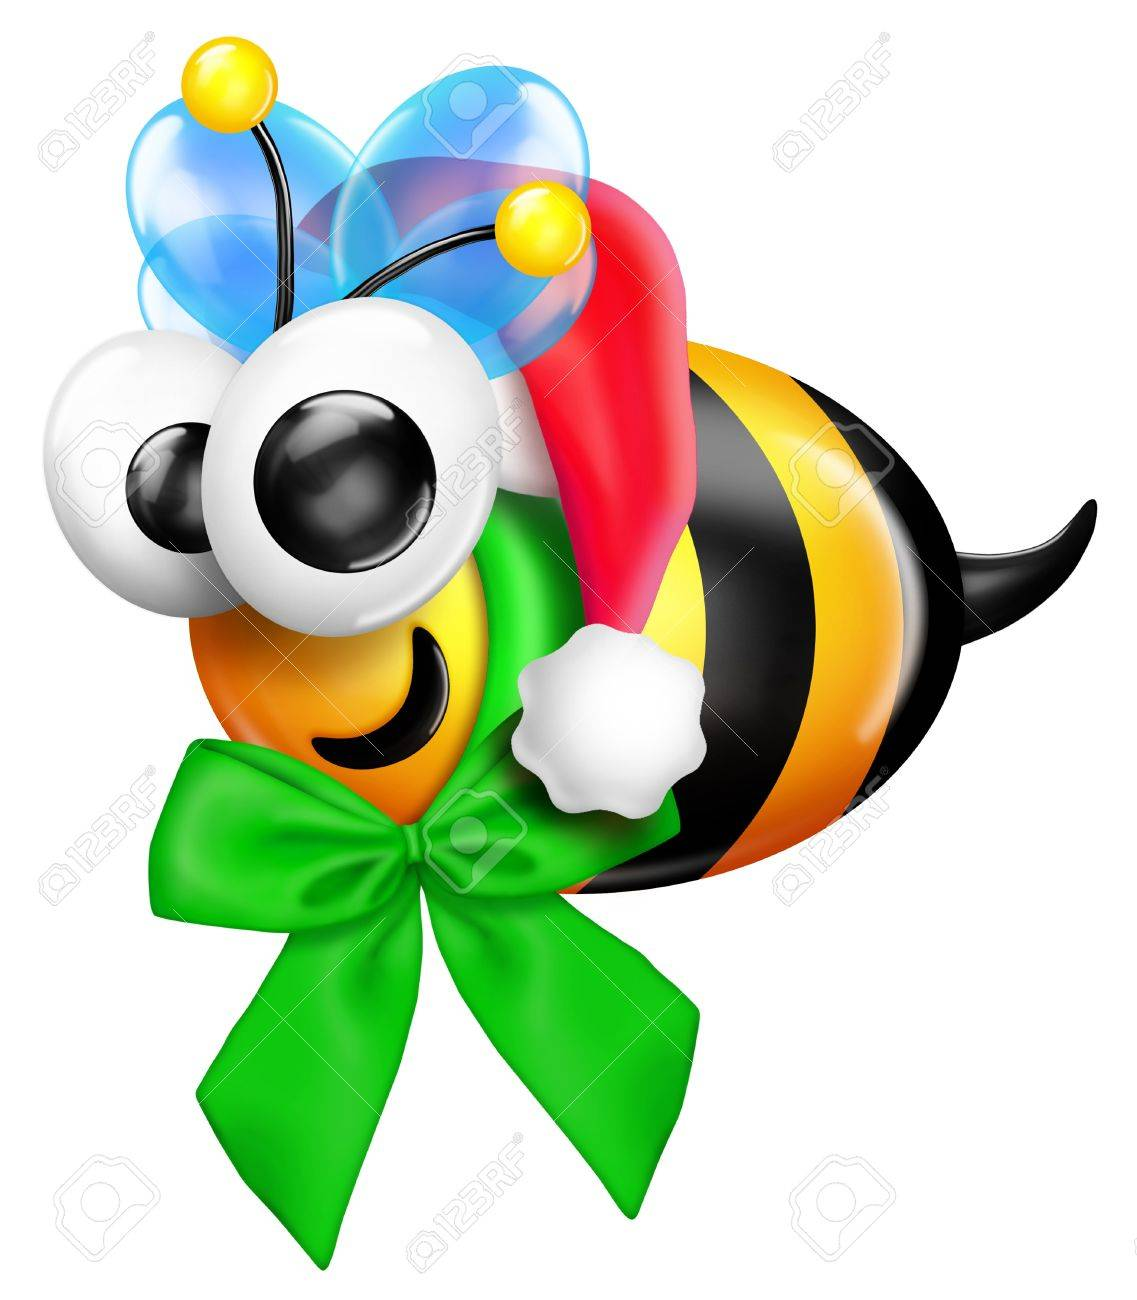 Whimsical Christmas Bee With Santa Hat Stock Photo, Picture And ...